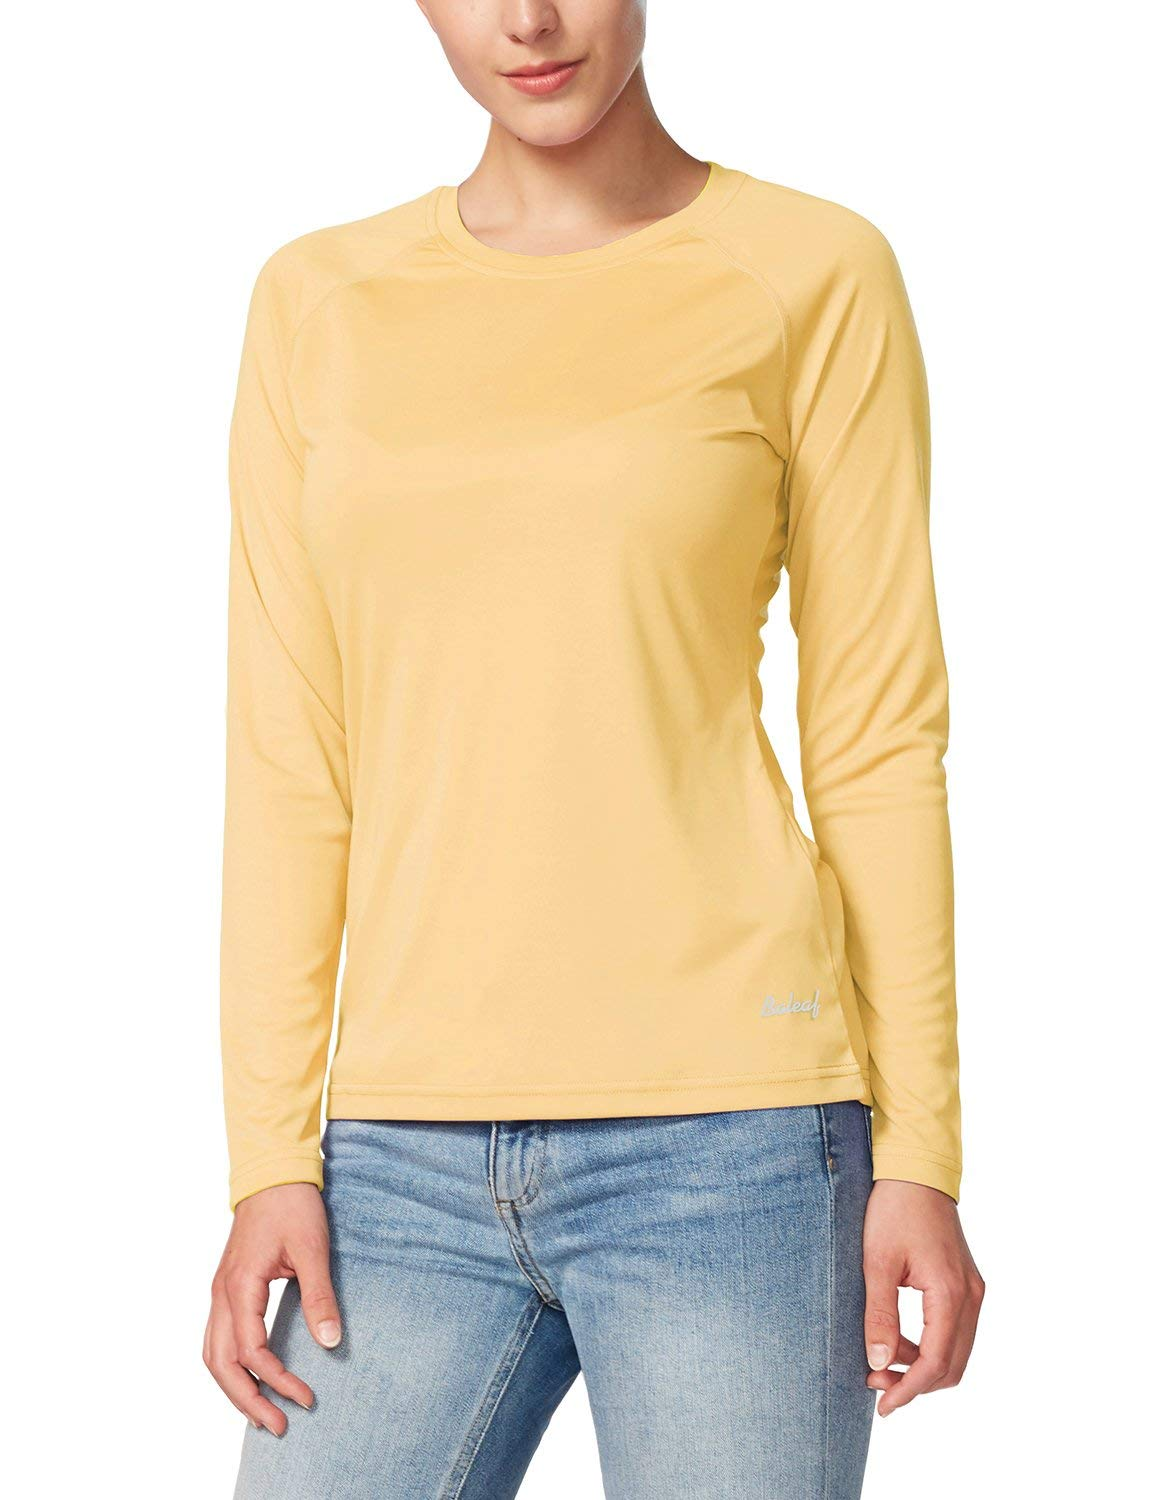 BALEAF Women's UPF 50+ Sun Protection T-Shirt Long Sleeve Outdoor Performance Yellow Size S by BALEAF